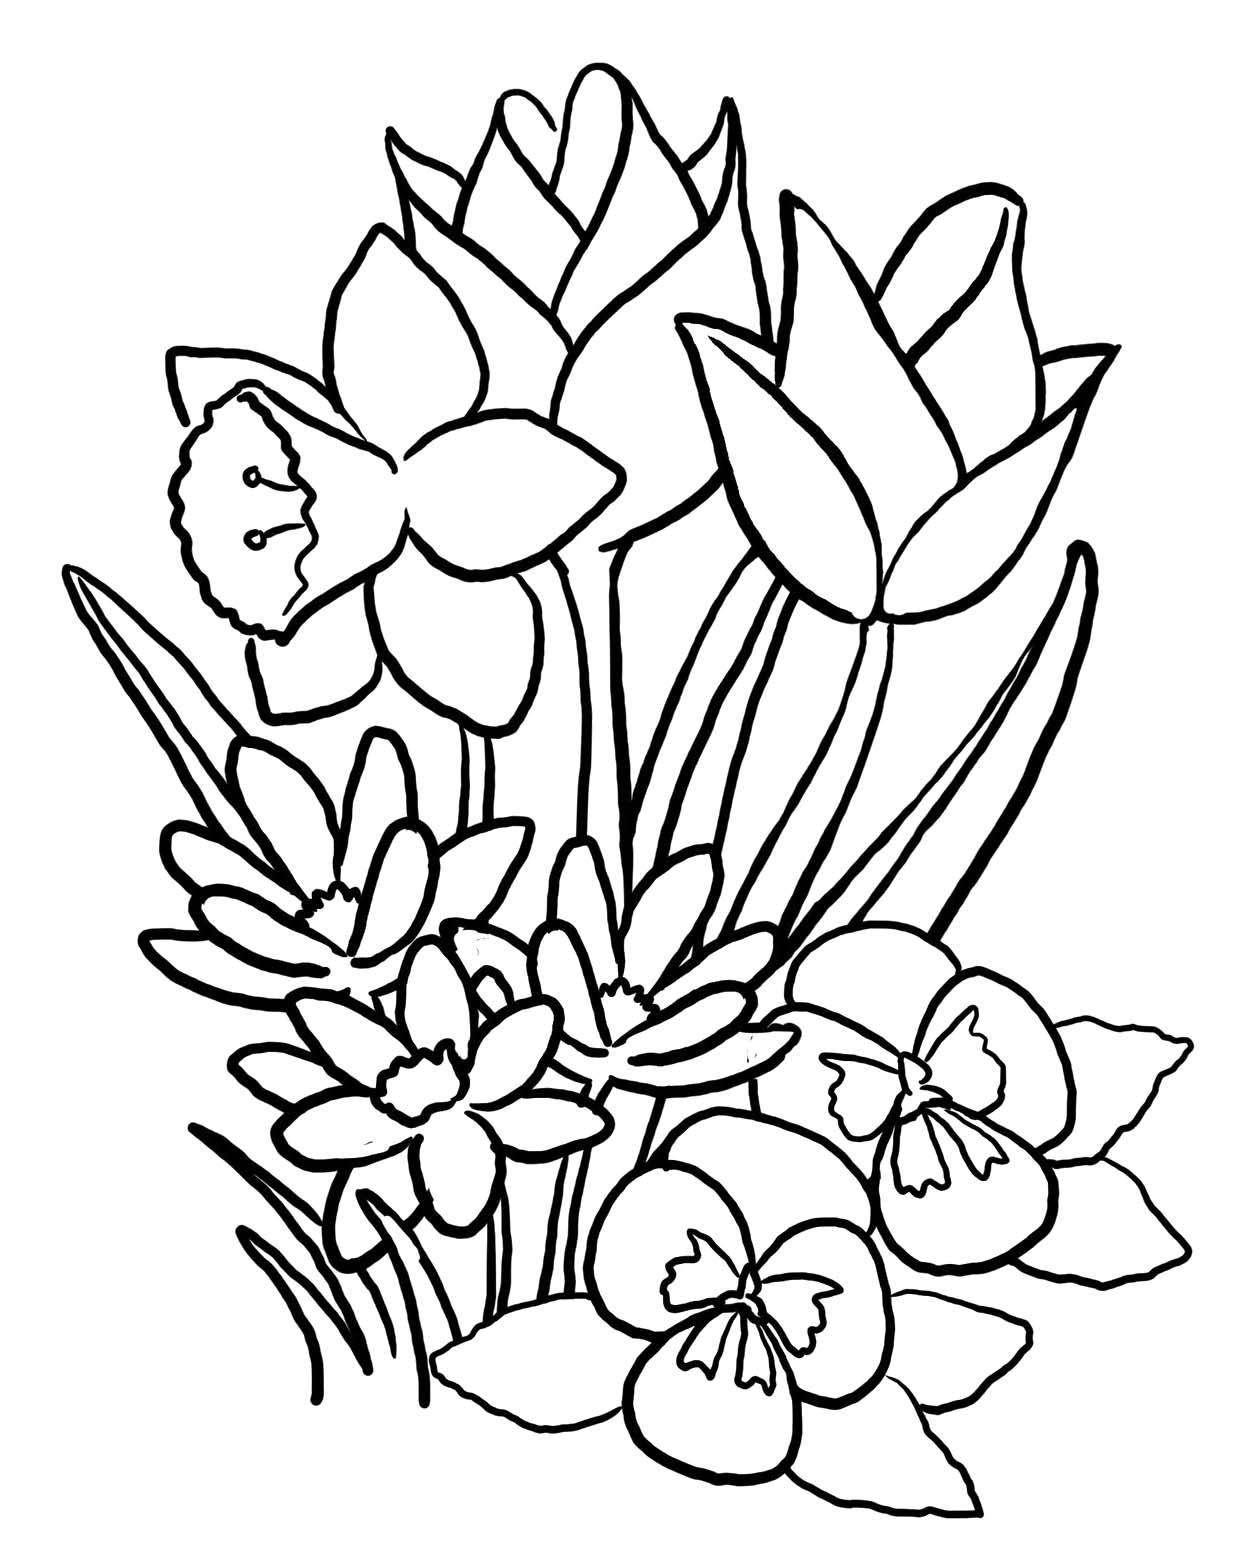 printable flowers to color free printable flower coloring pages for kids best printable flowers to color 1 1